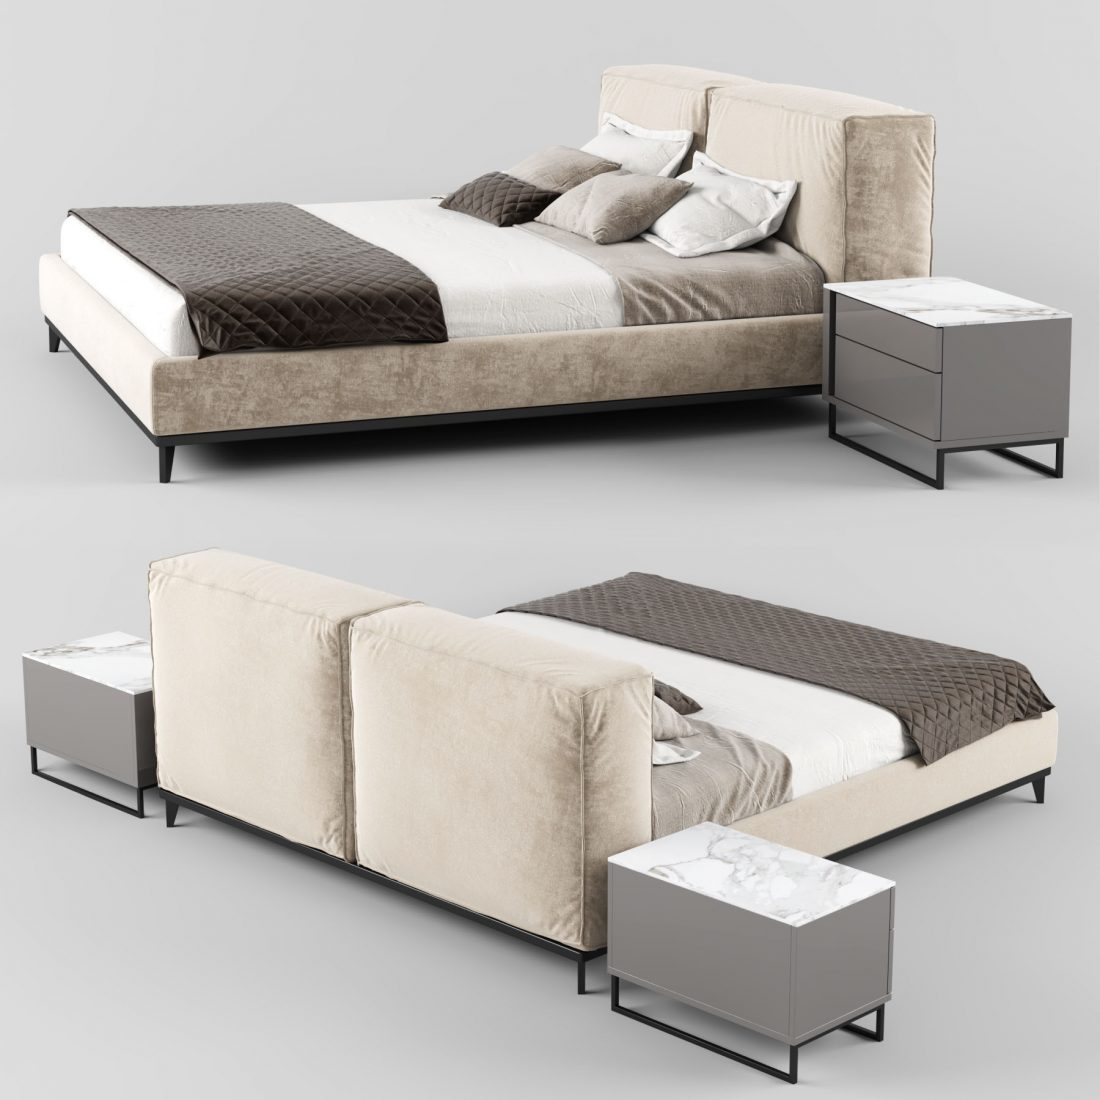 Modern Fabric Bed With Upholstered Headboard 3d Model For Vray